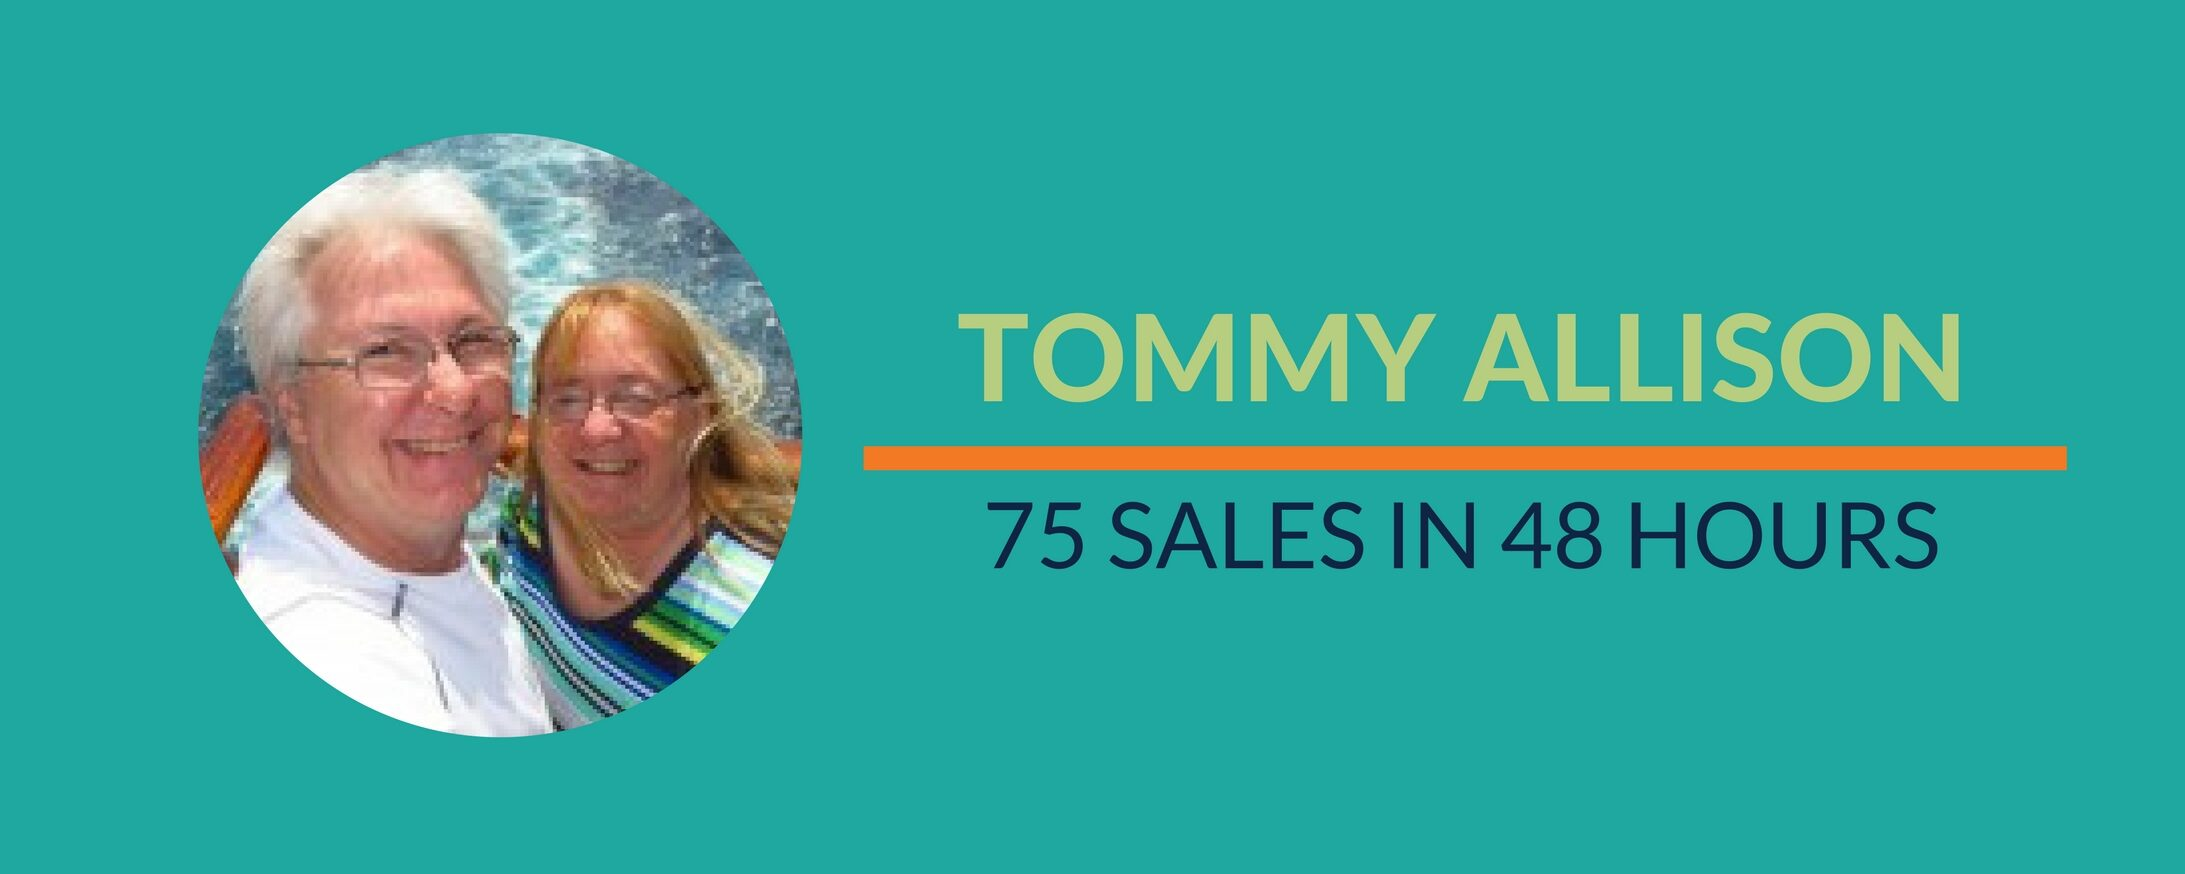 Success Story: 75 Sales in 48 Hours